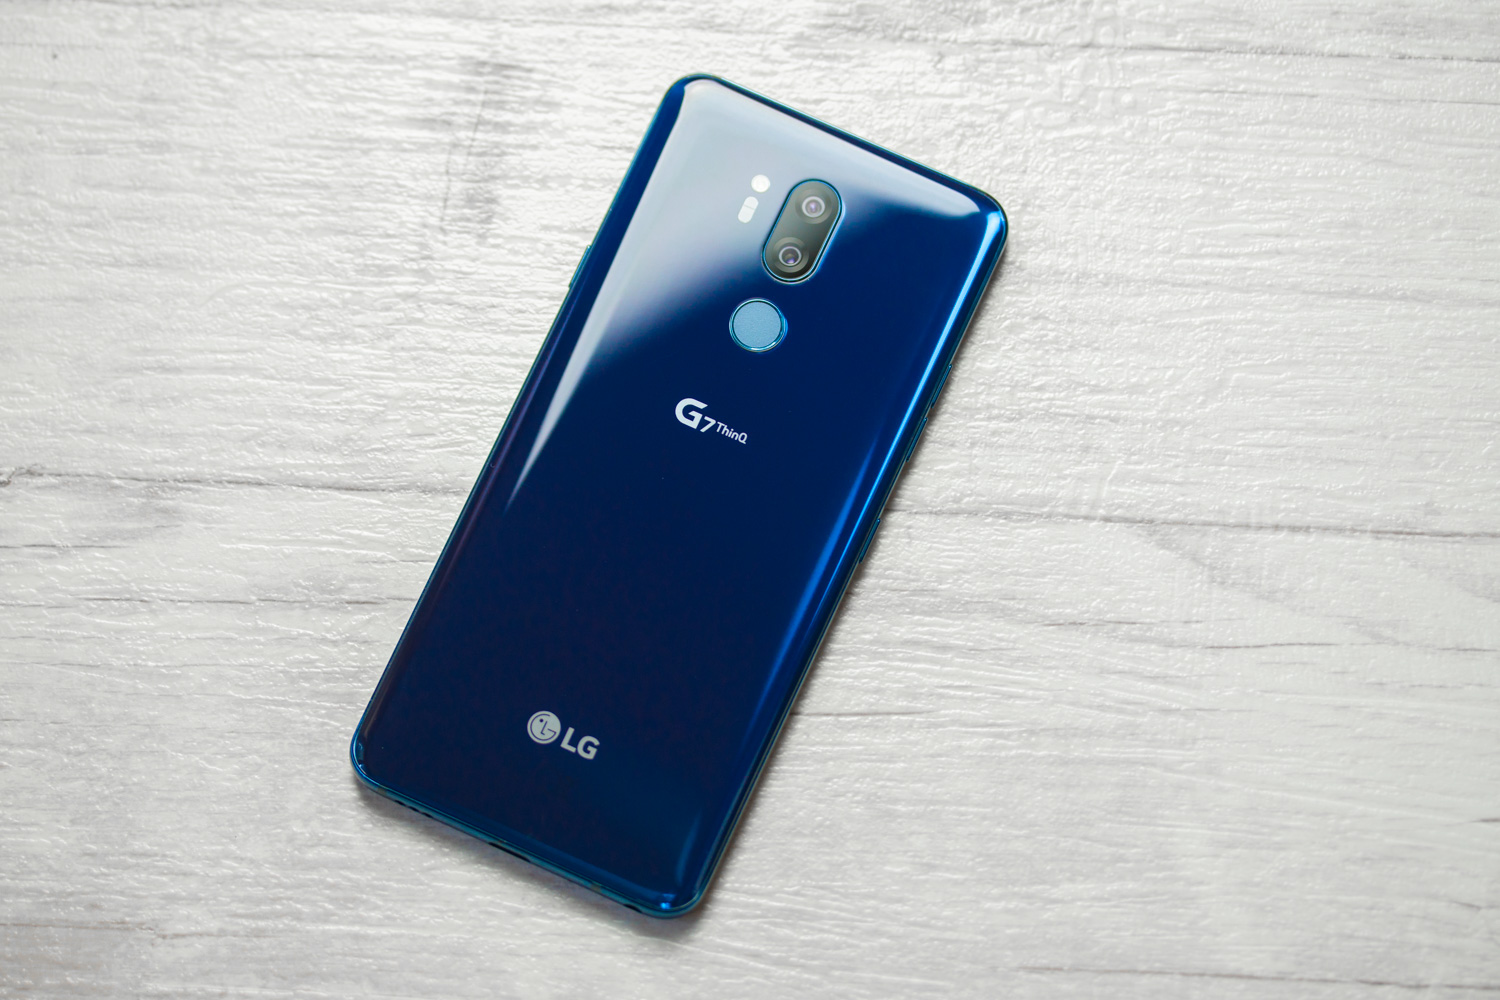 Which textphone up to 1700 PLN? LG G7